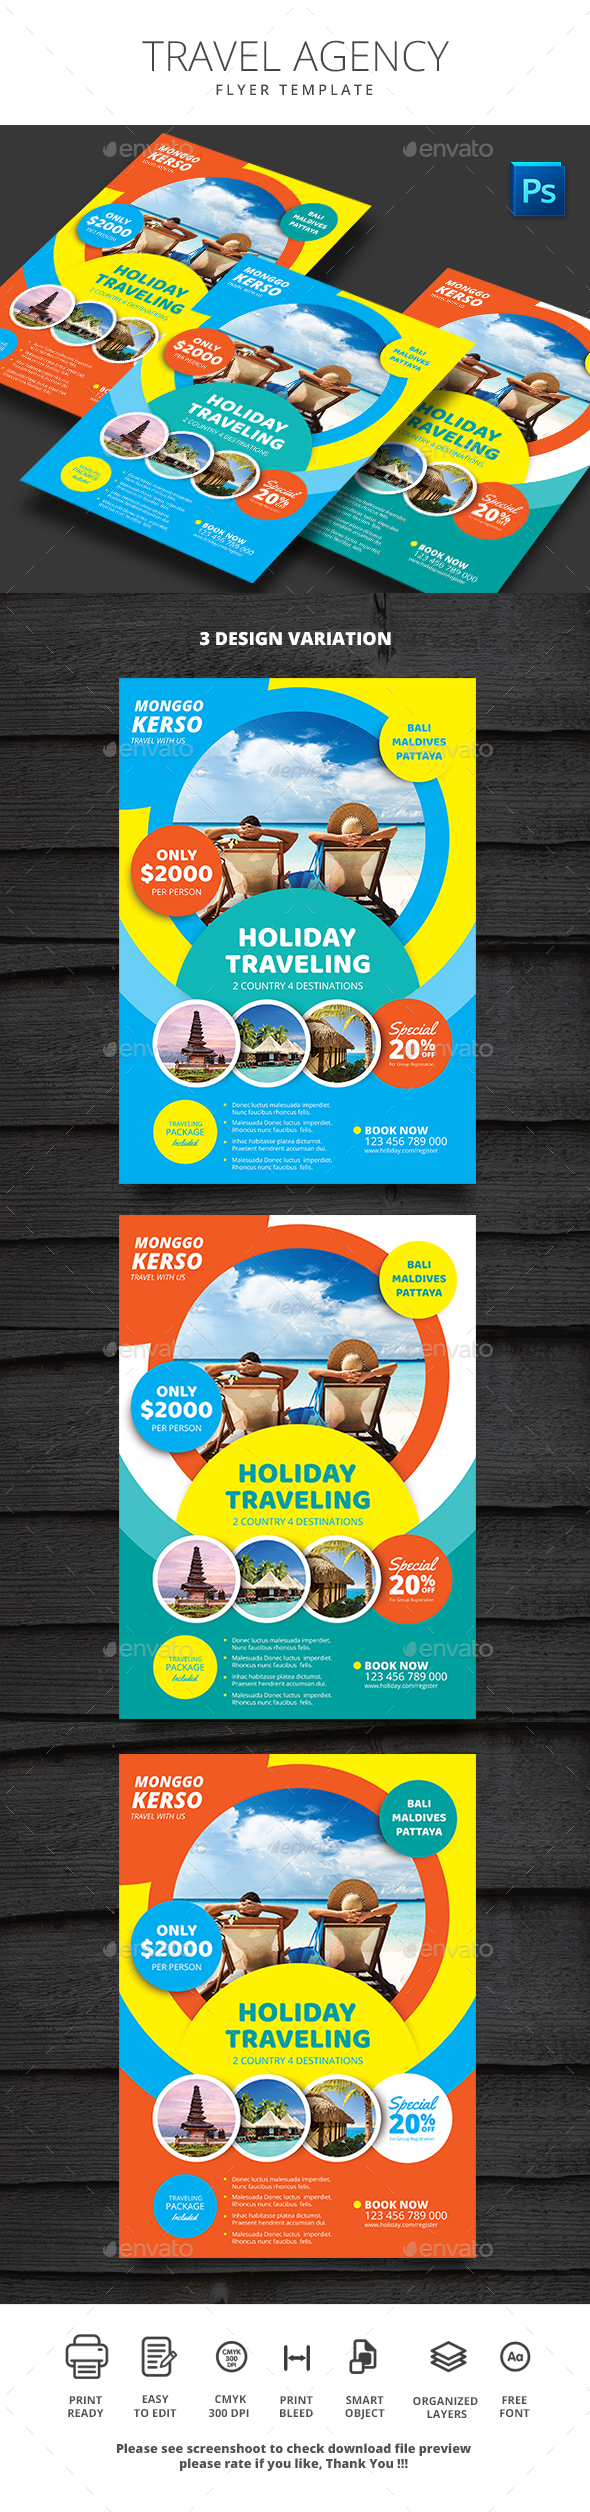 Travel Agency - Holidays Events